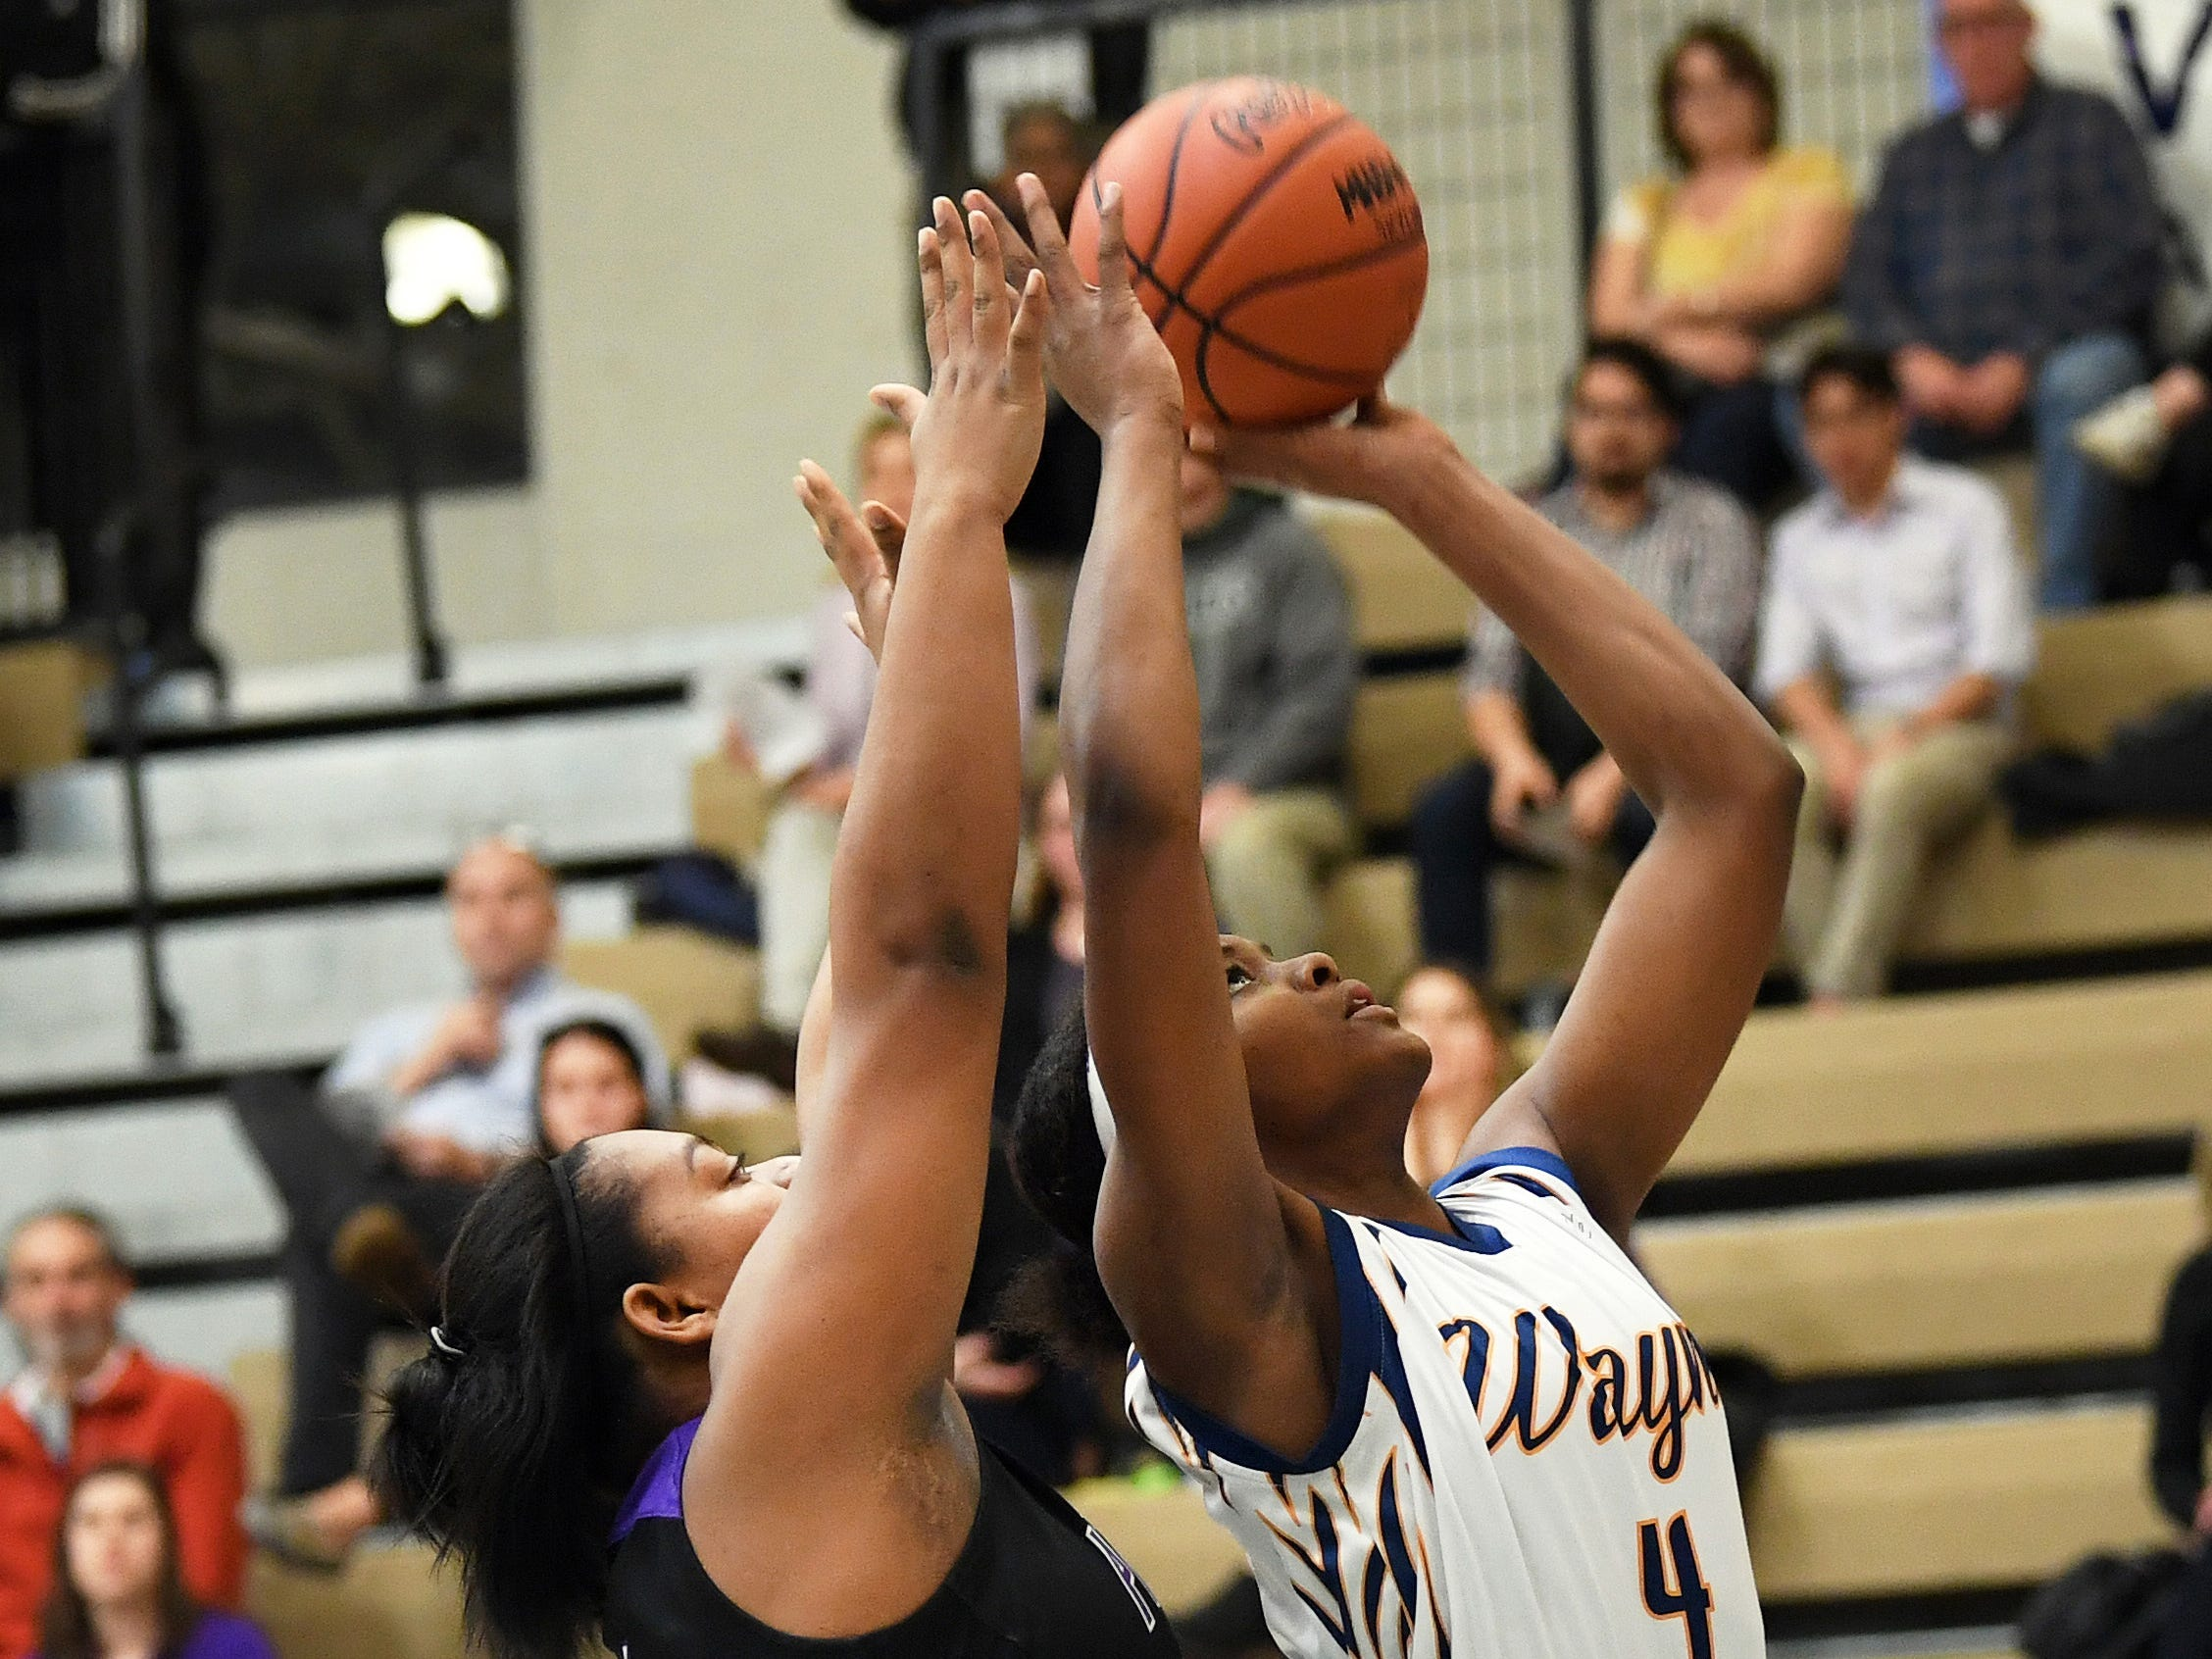 Wayne Memorial forward Alanna Micheaux puts up a shot as she is guarded by Ann Arbor Pioneer center Asaria Turman in the first quarter.